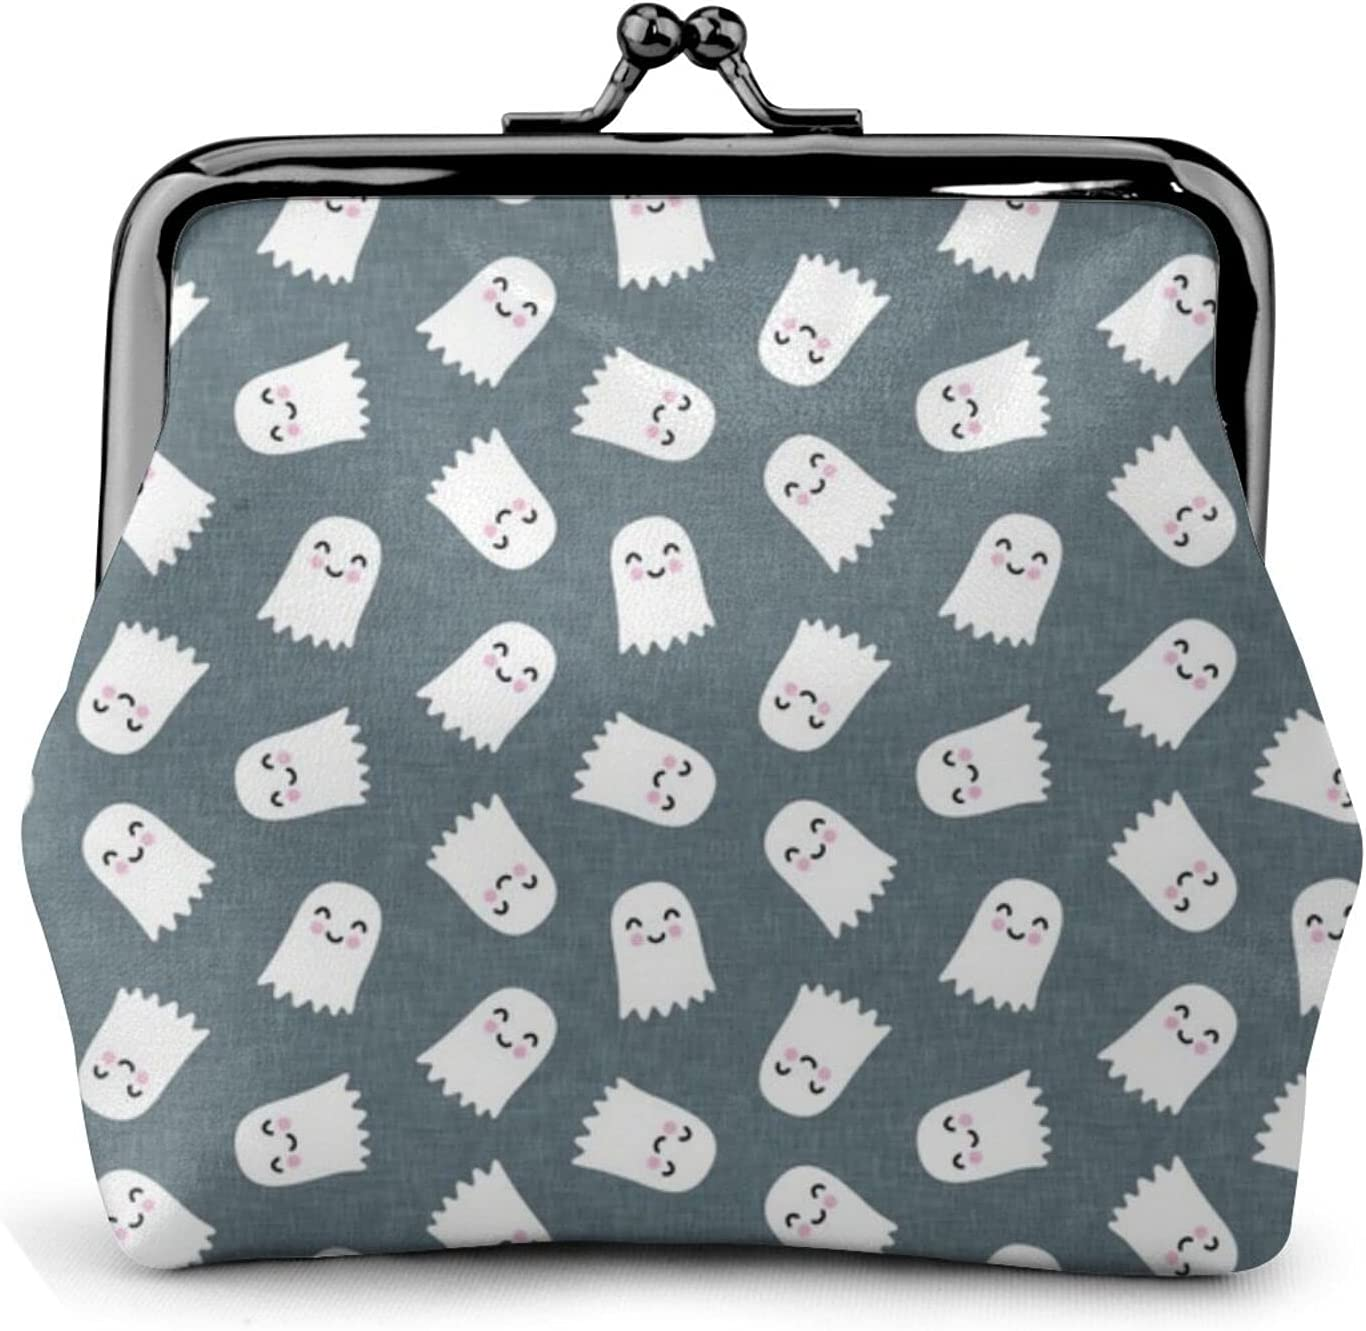 Cute Ghost Halloween 1865 Coin Purse Retro Money Pouch with Kiss-lock Buckle Small Wallet for Women and Girls